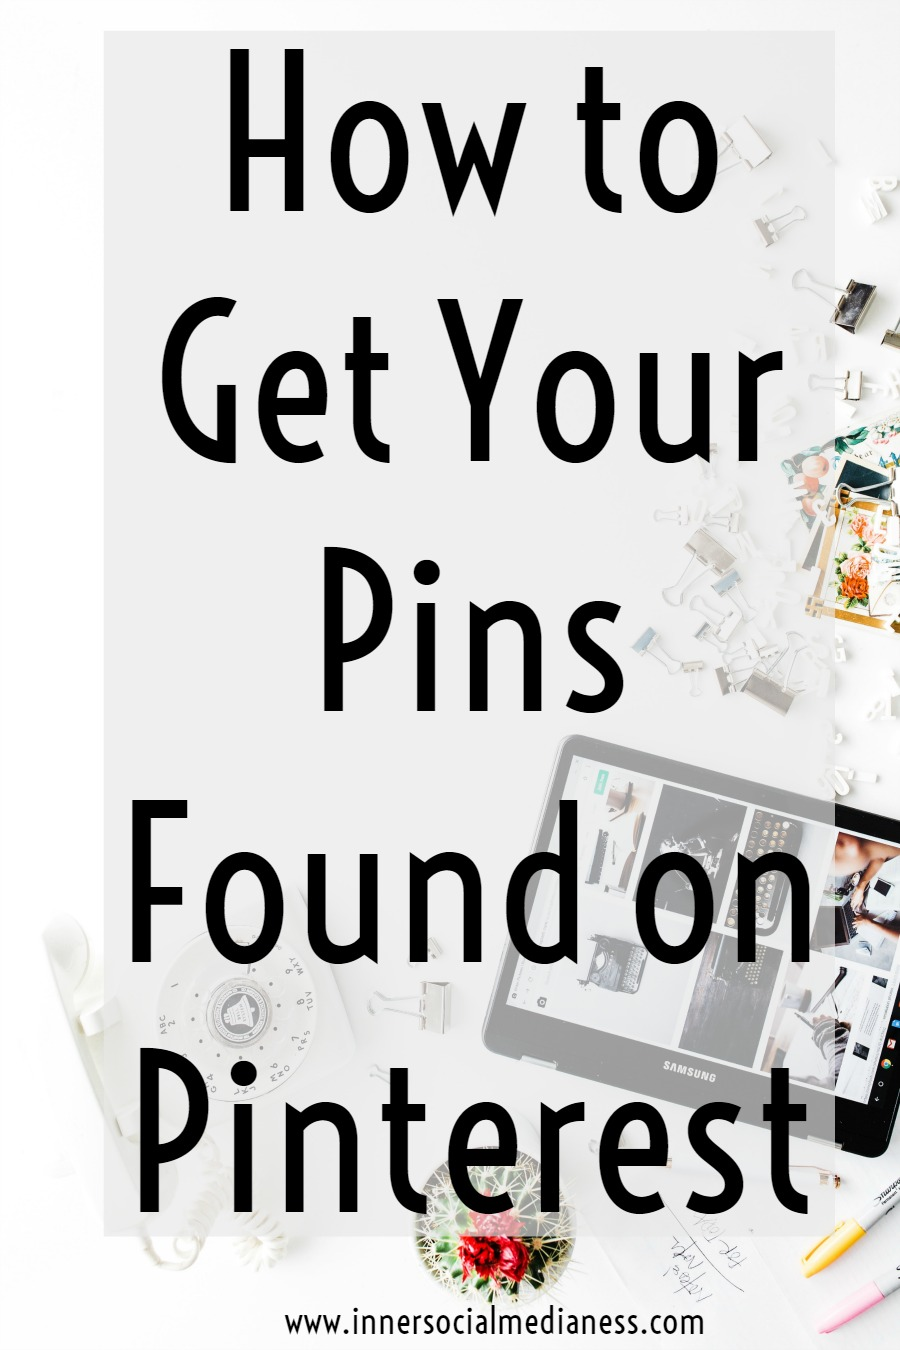 How to Get Your Pins Found on Pinterest - do you know that there is really is a process to get more people to find your pins, click on them and go to your website? Try these easy action steps to get more repins and to get your pins found on Pinterest.